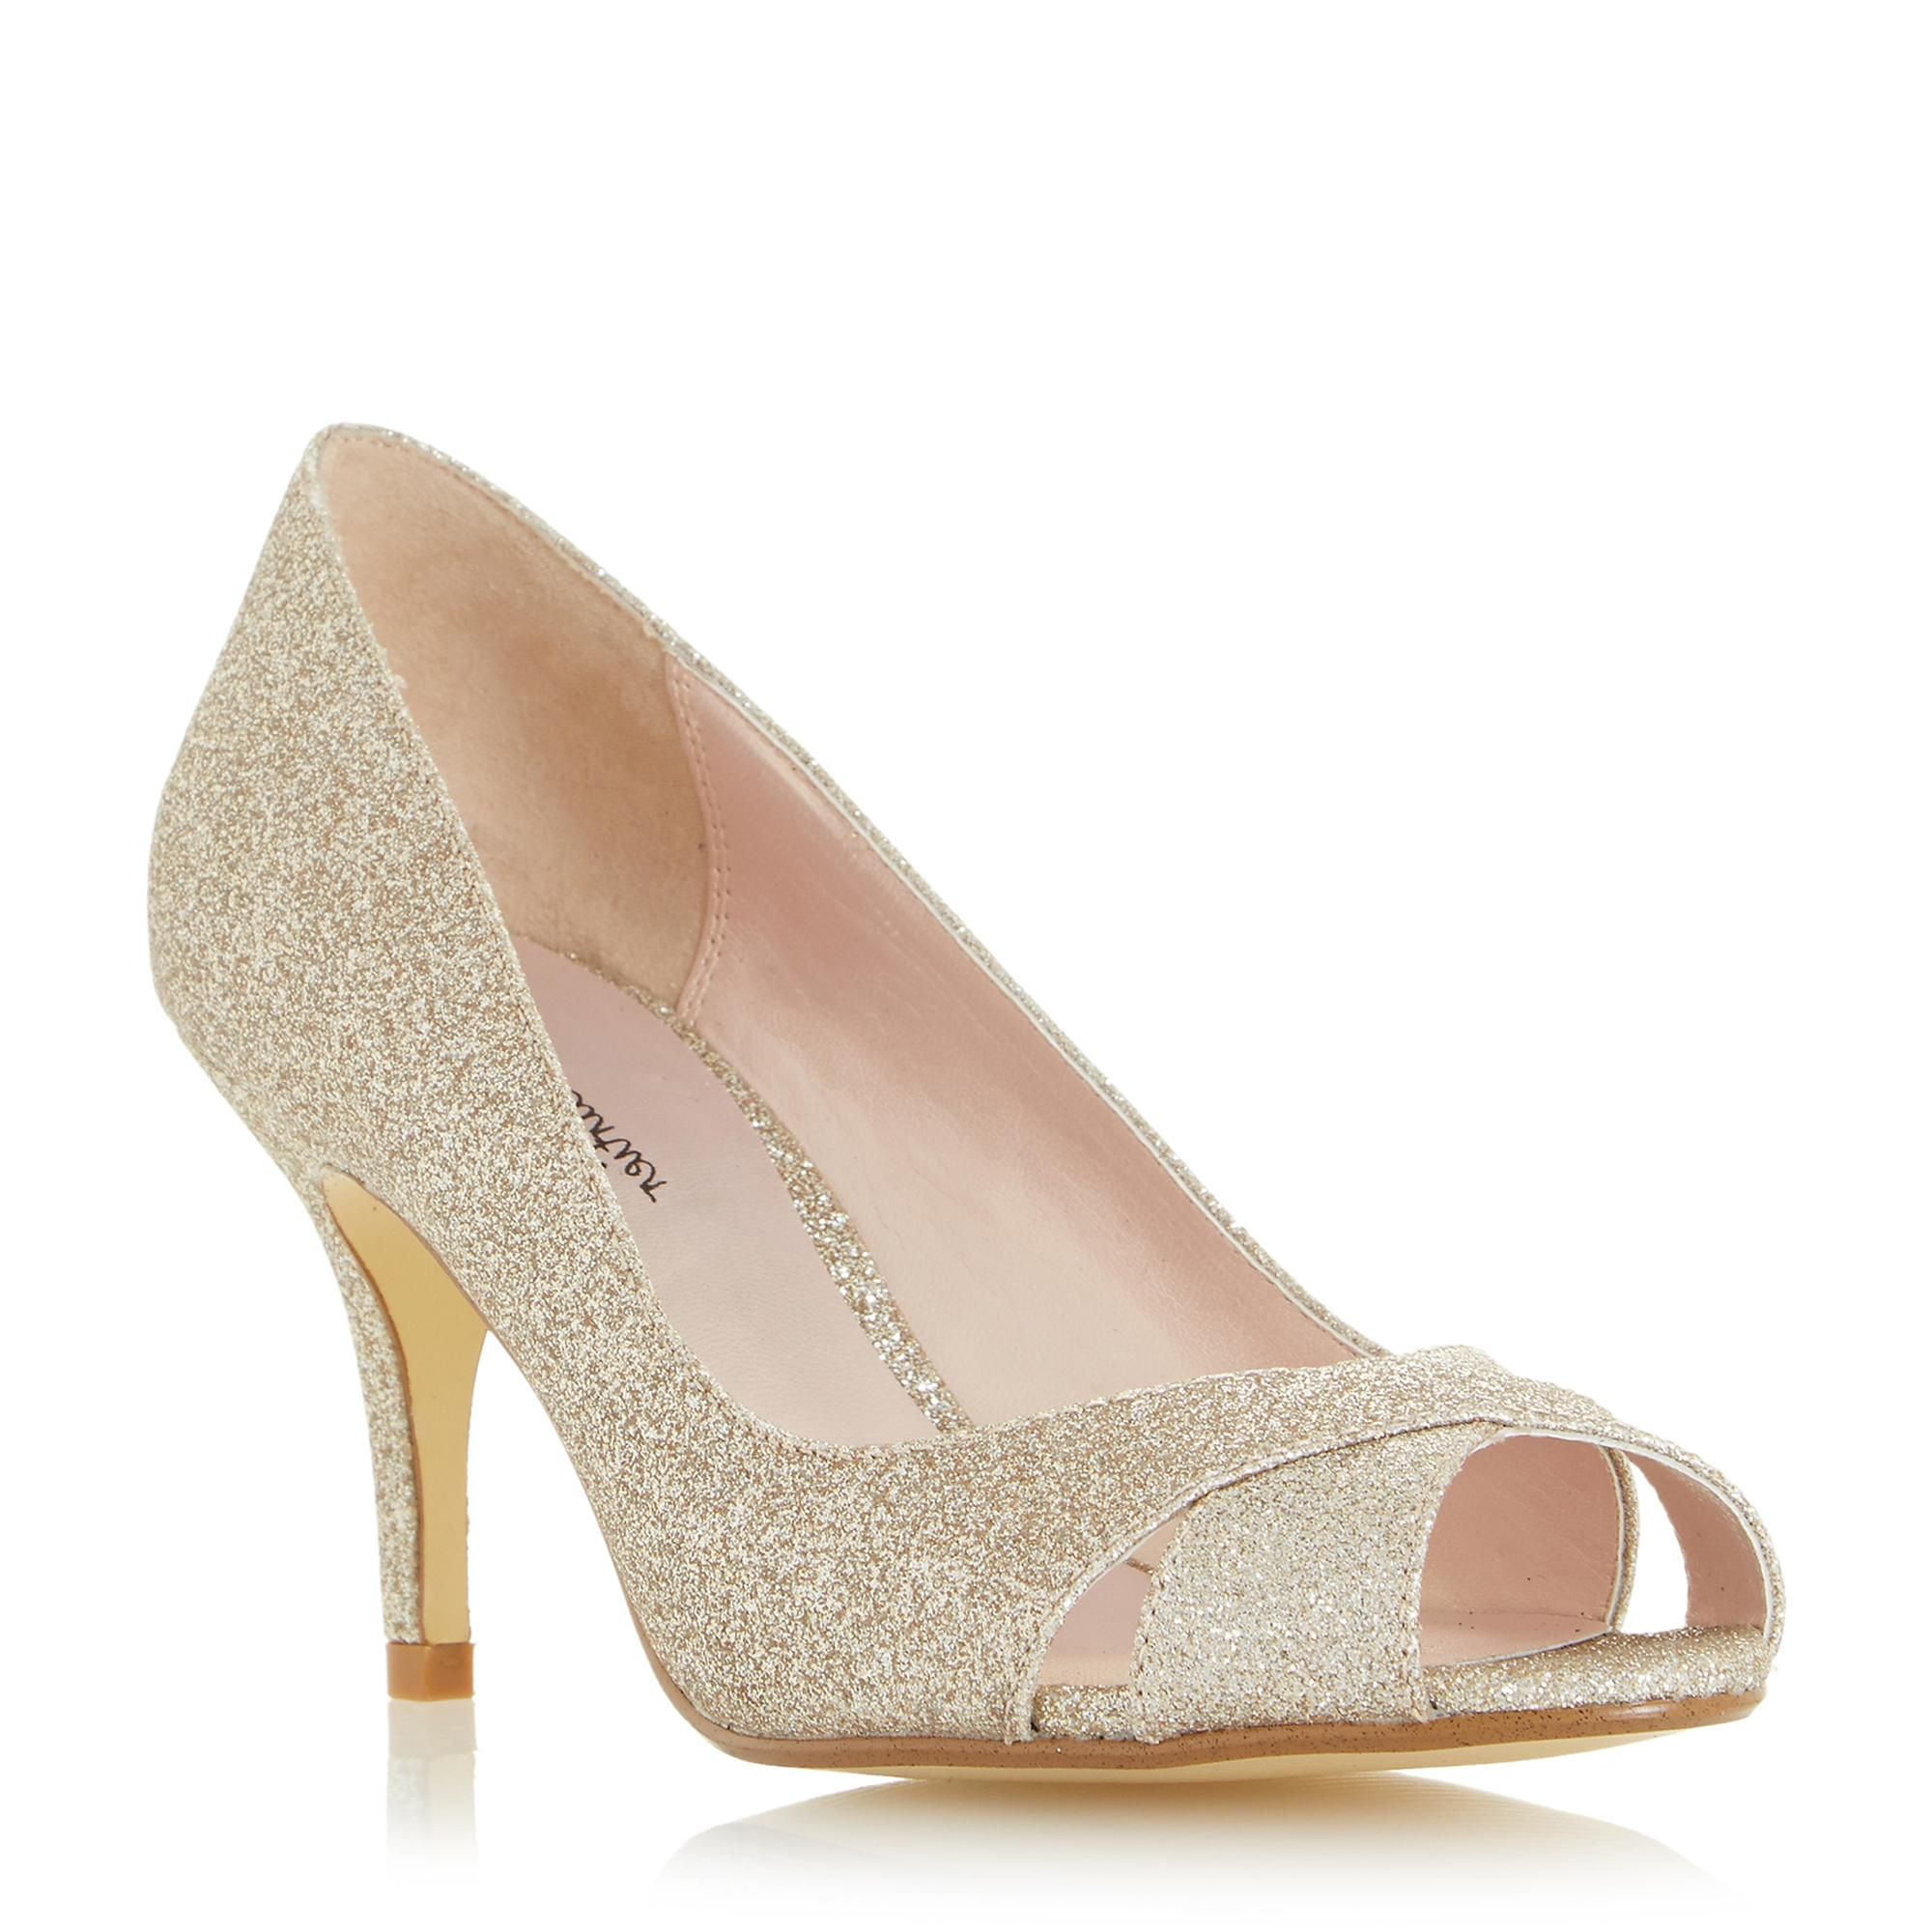 72493b31c6a8 Roland Cartier Ladies DUBAI - Cross Over Front Peep Toe Court Shoe - gold